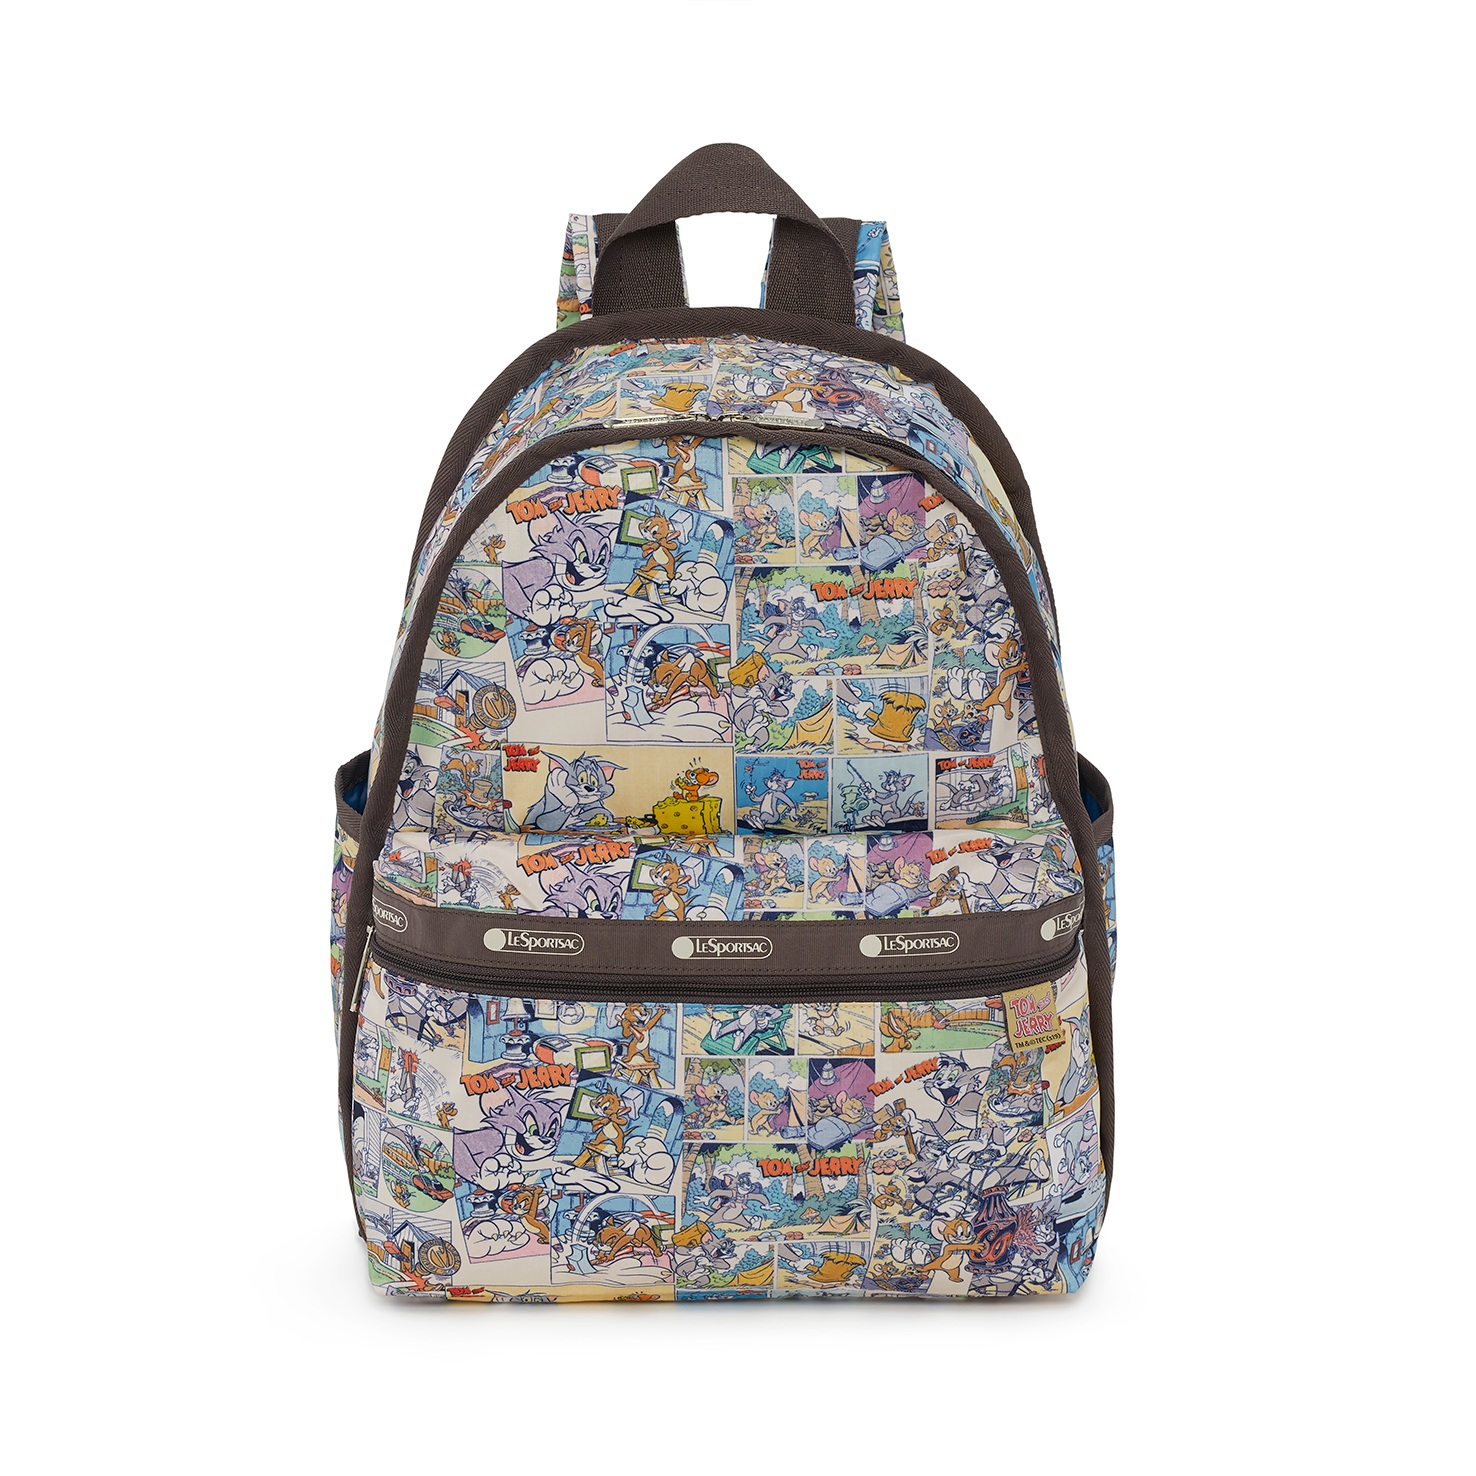 Basic Backpack(Tom & Jerry Comic Strip) $132